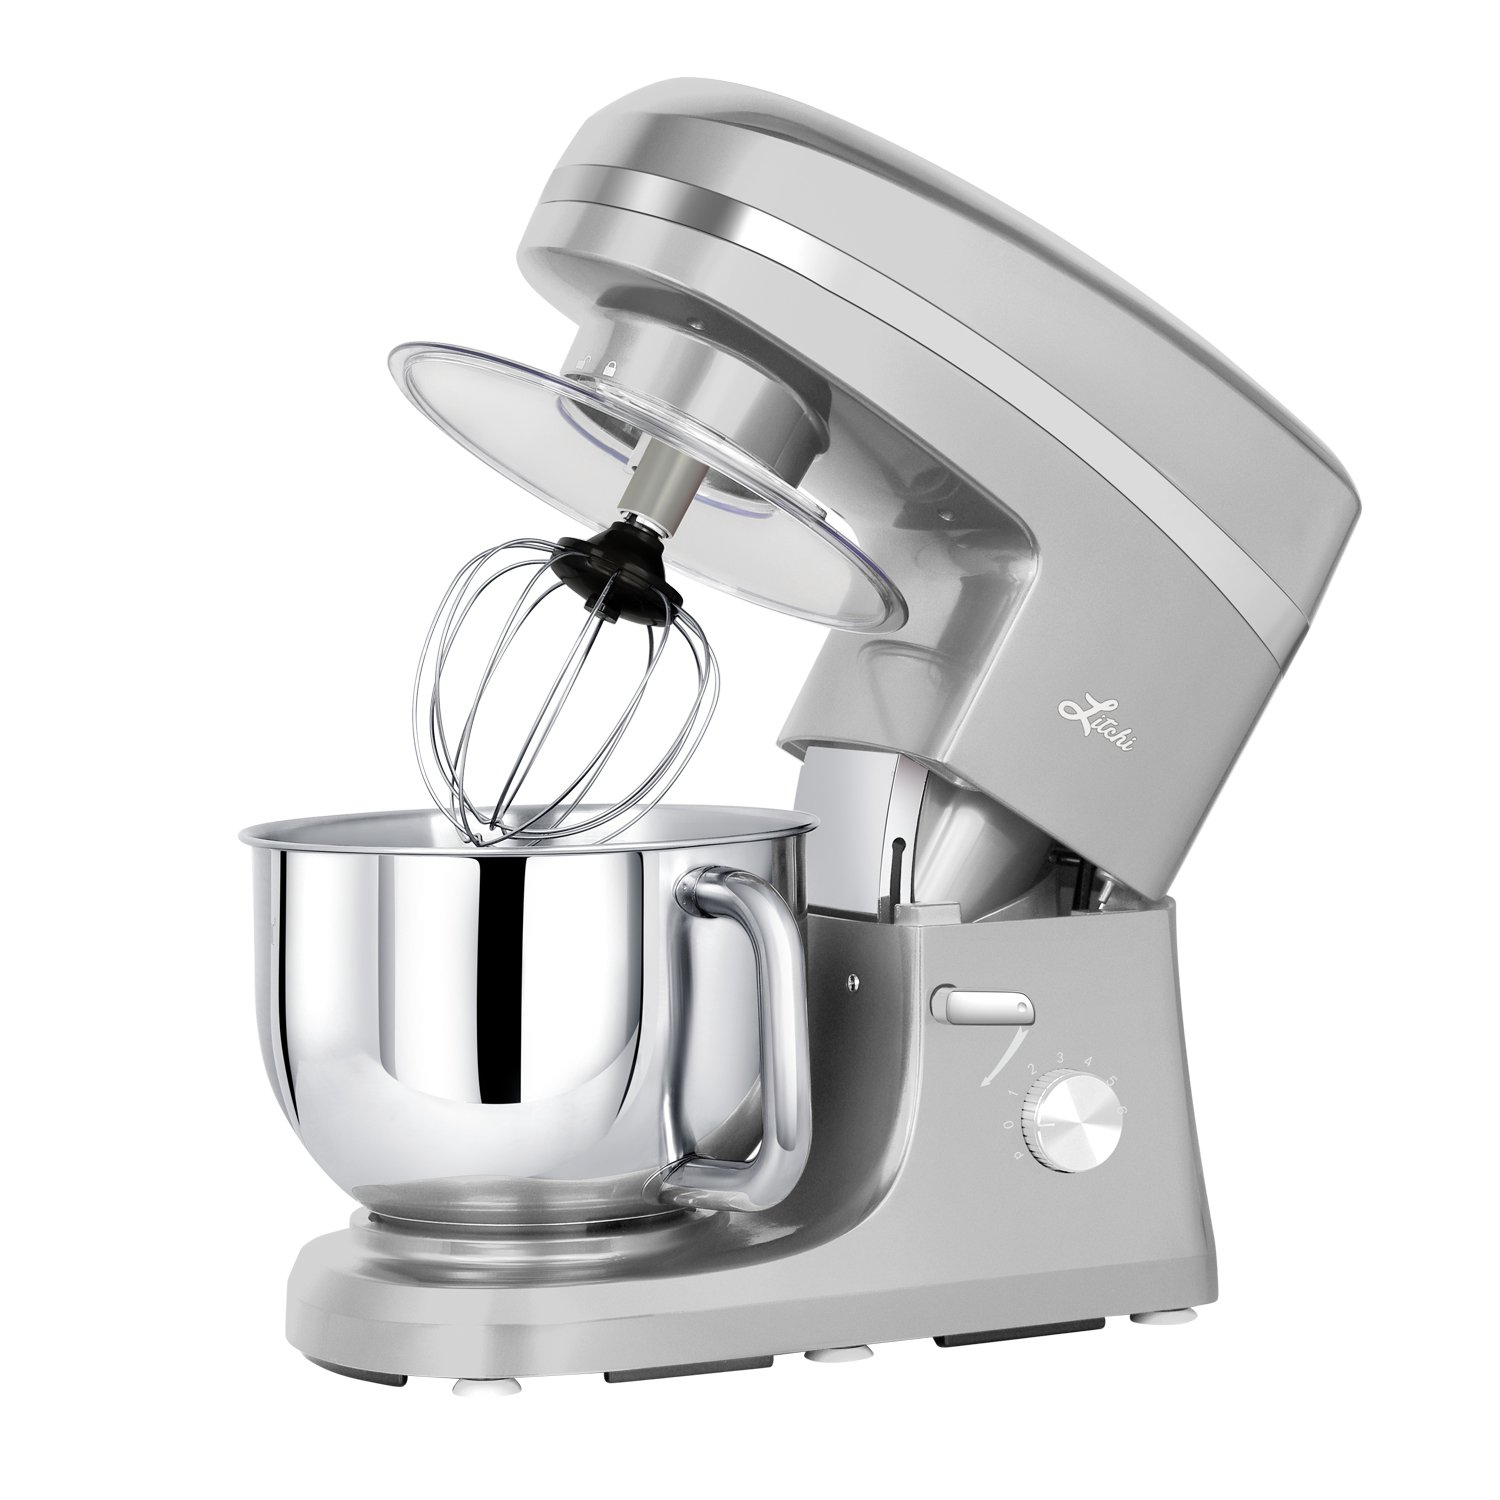 Litchi Stand Mixer, 5.5 Qt. Kitchen Mixer, 650W 6 Speed Tilt-Head Stand Mixers with Splash Guard, Stainless Steel Bowl, Beaters, Whisk, Dough Hook, Silver